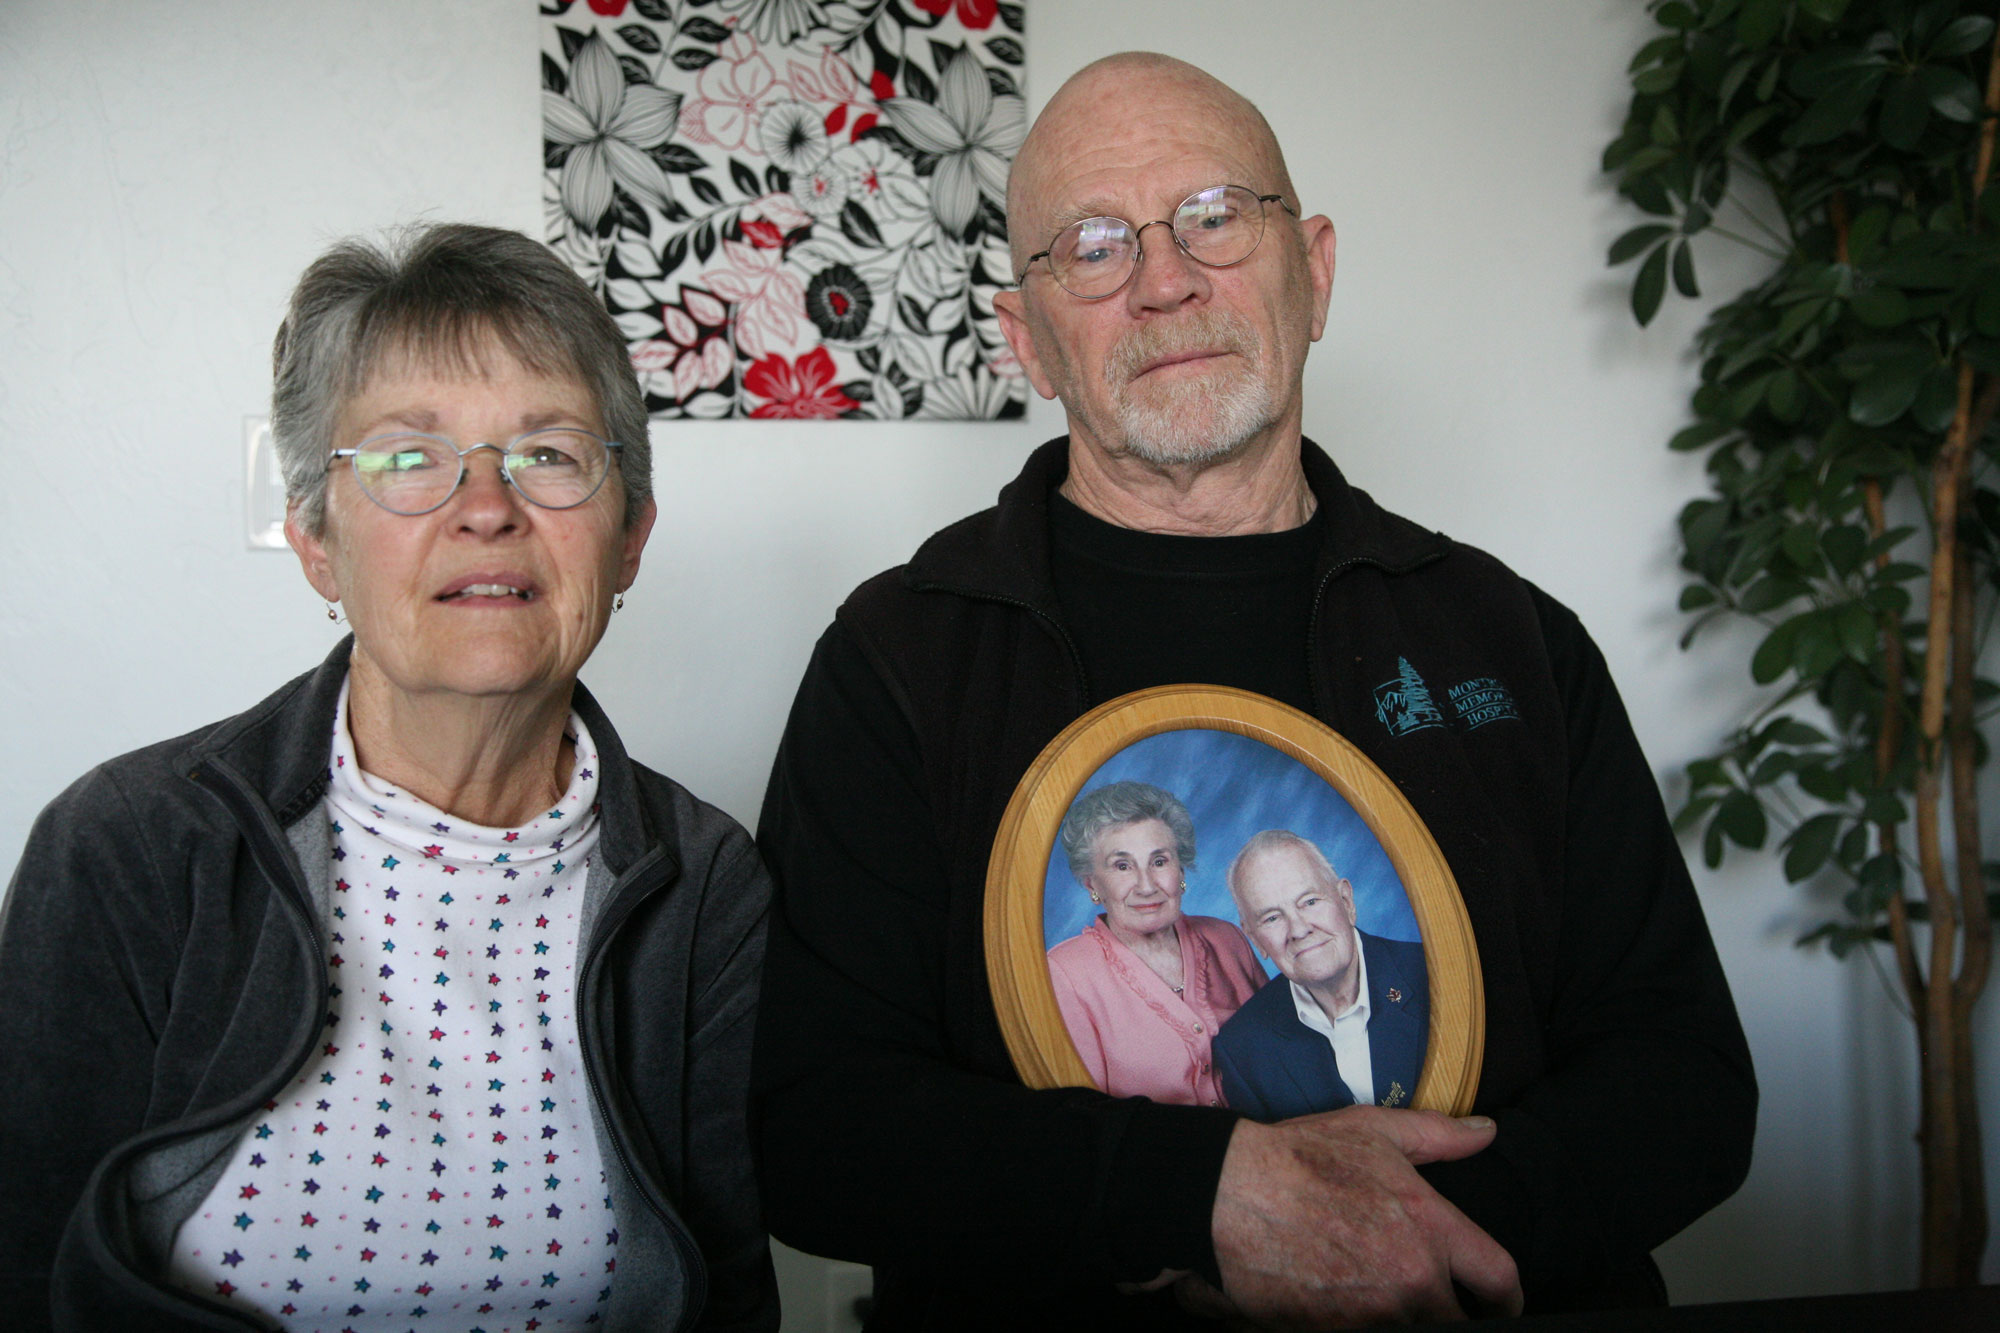 <p>Barb and Ron Abbottare some of the untold number of people in the Montrose area with a loved one whose remains may have been mishandled by Sunset Mesa Funeral Directors. Ron's mother, Shirley, had made arrangements with the now-closed funeral home. Above, Ron holds a photo of his mother and his father, Bob.</p>